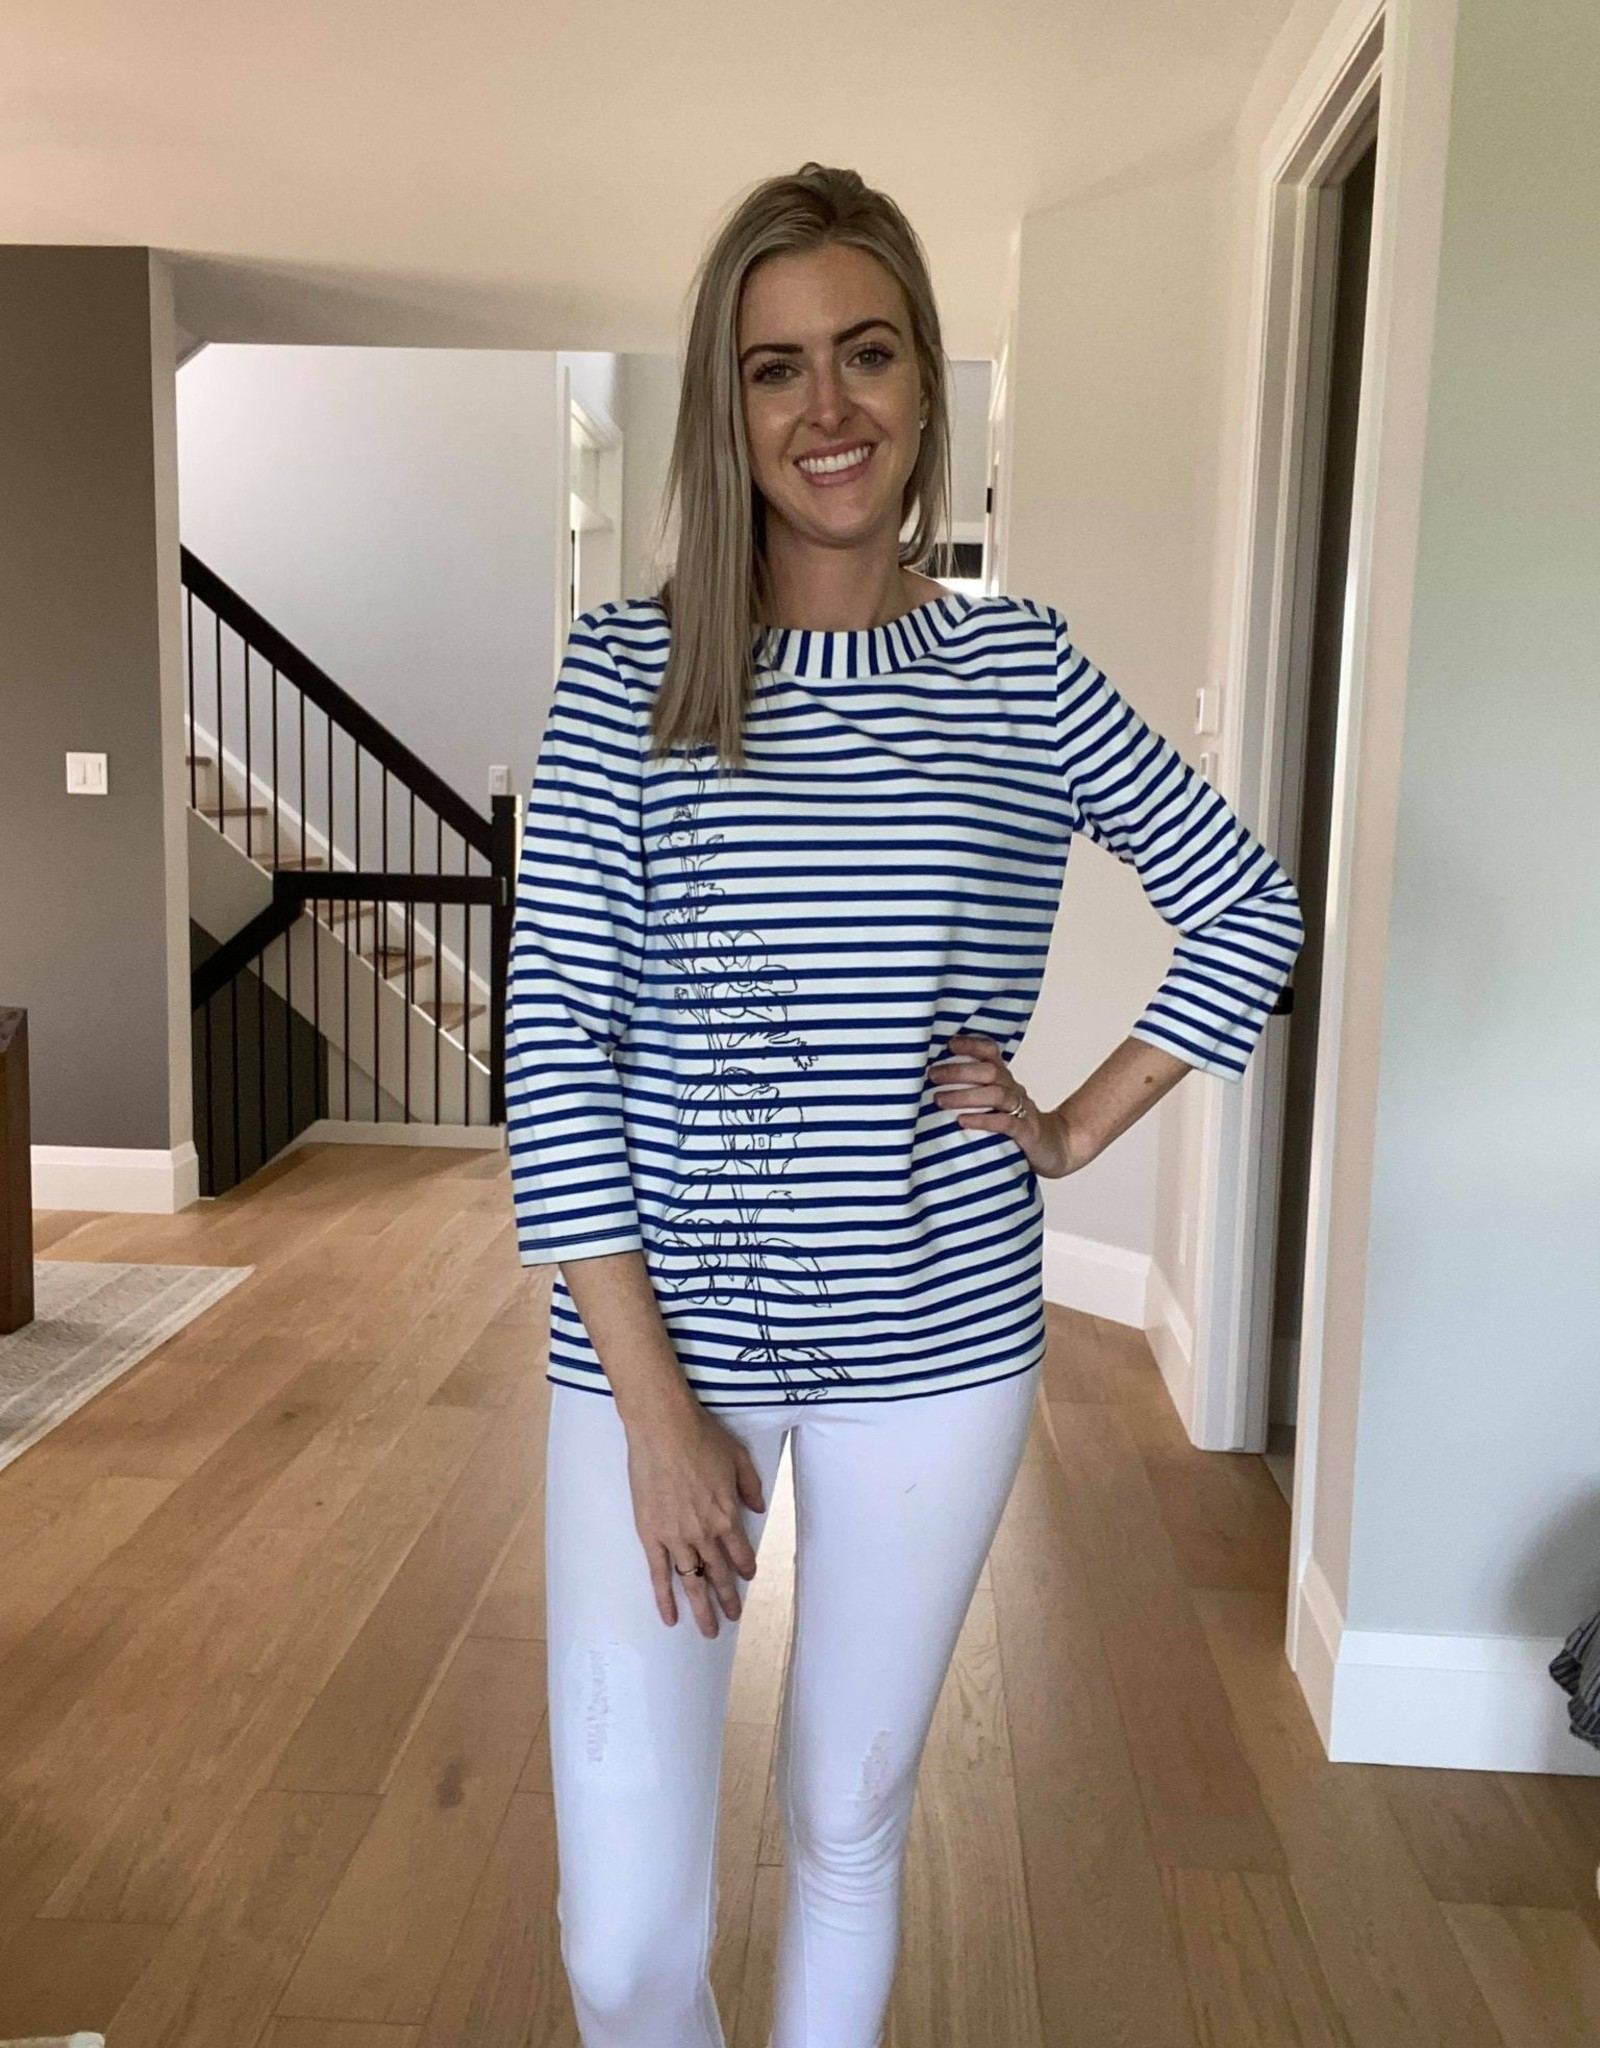 Striped Top with Floral Motiff